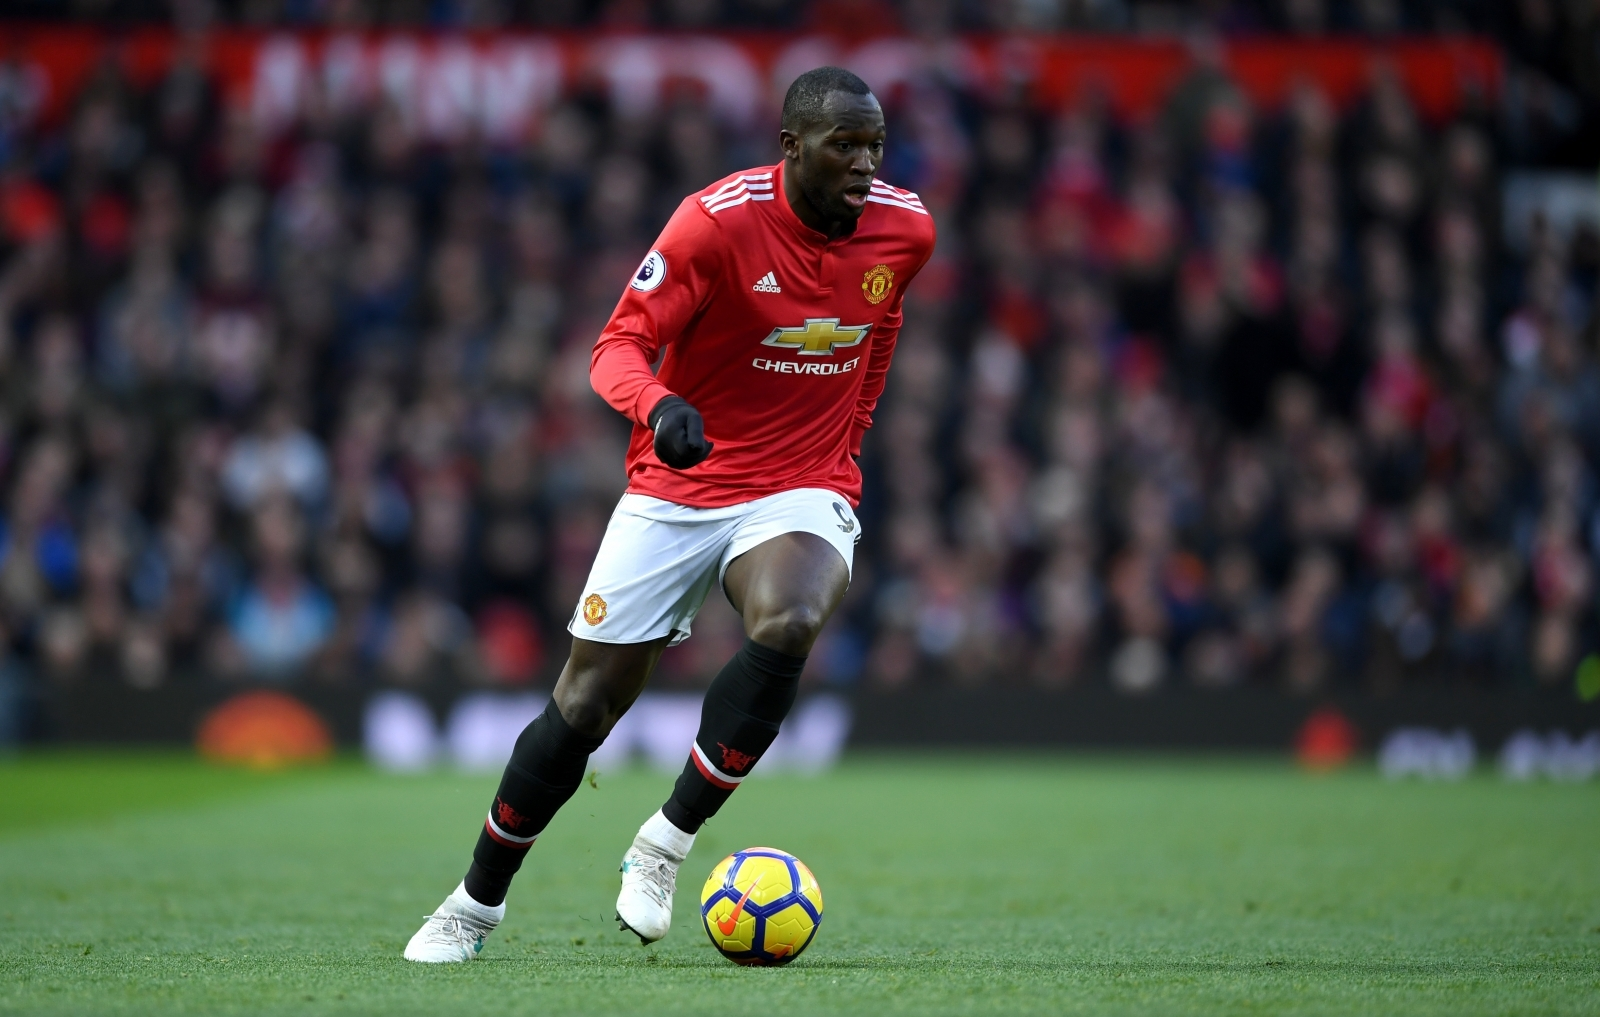 Manchester United's Romelu Lukaku 'has To Deliver' Against